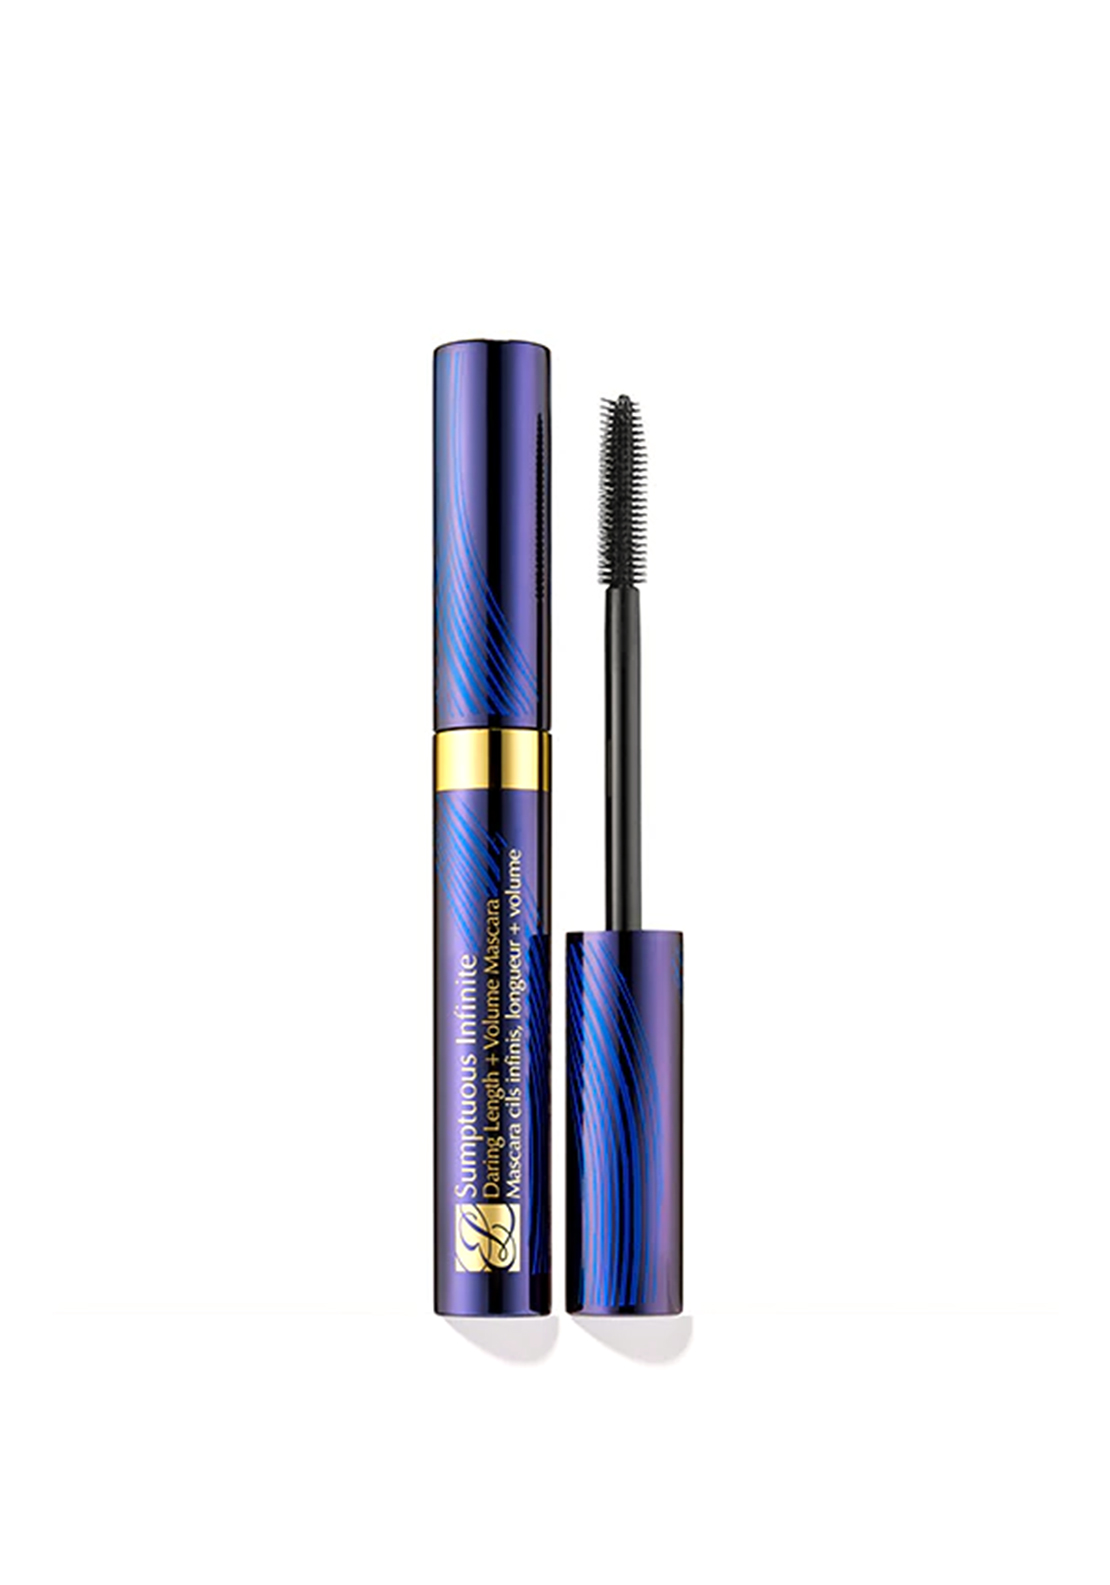 Estee Lauder Sumptuous Infinite Daring Length & Volume Mascara, Brown